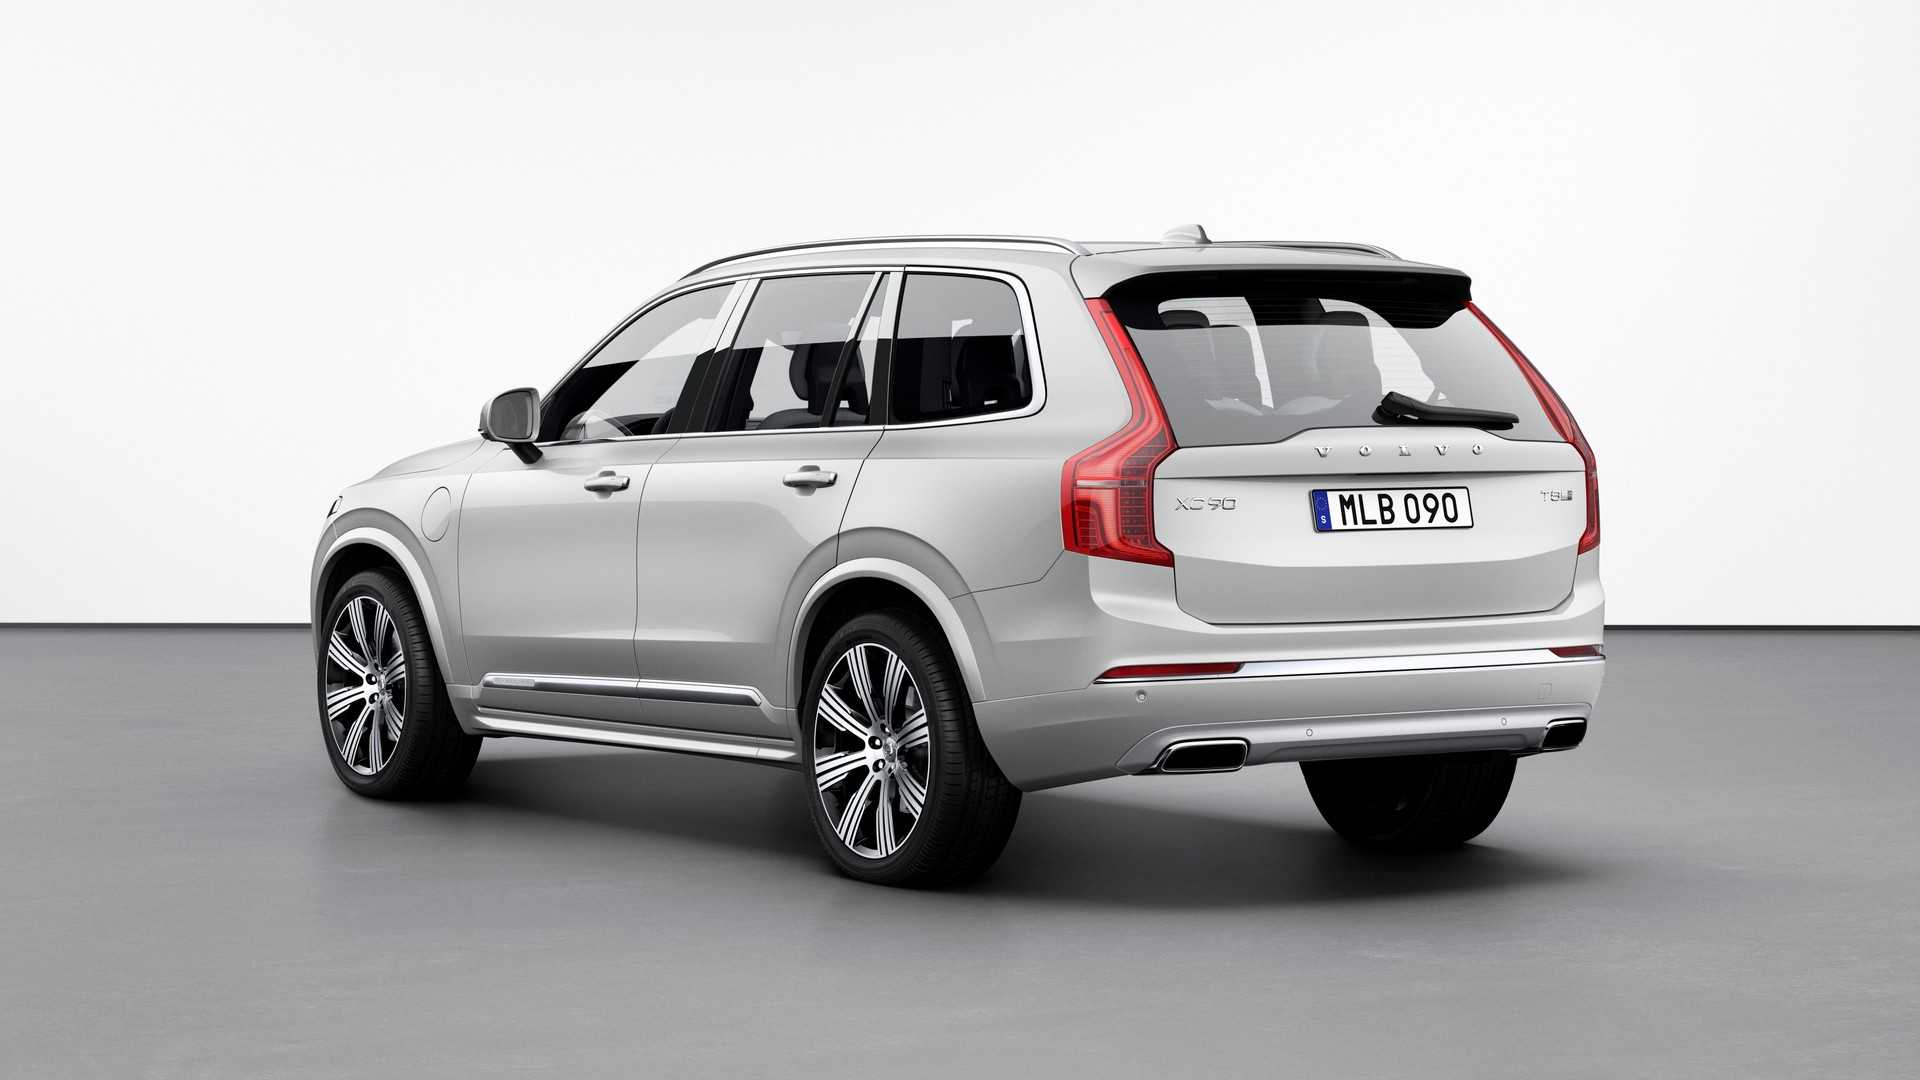 26 Gallery of Volvo S90 2020 Facelift New Review for Volvo S90 2020 Facelift